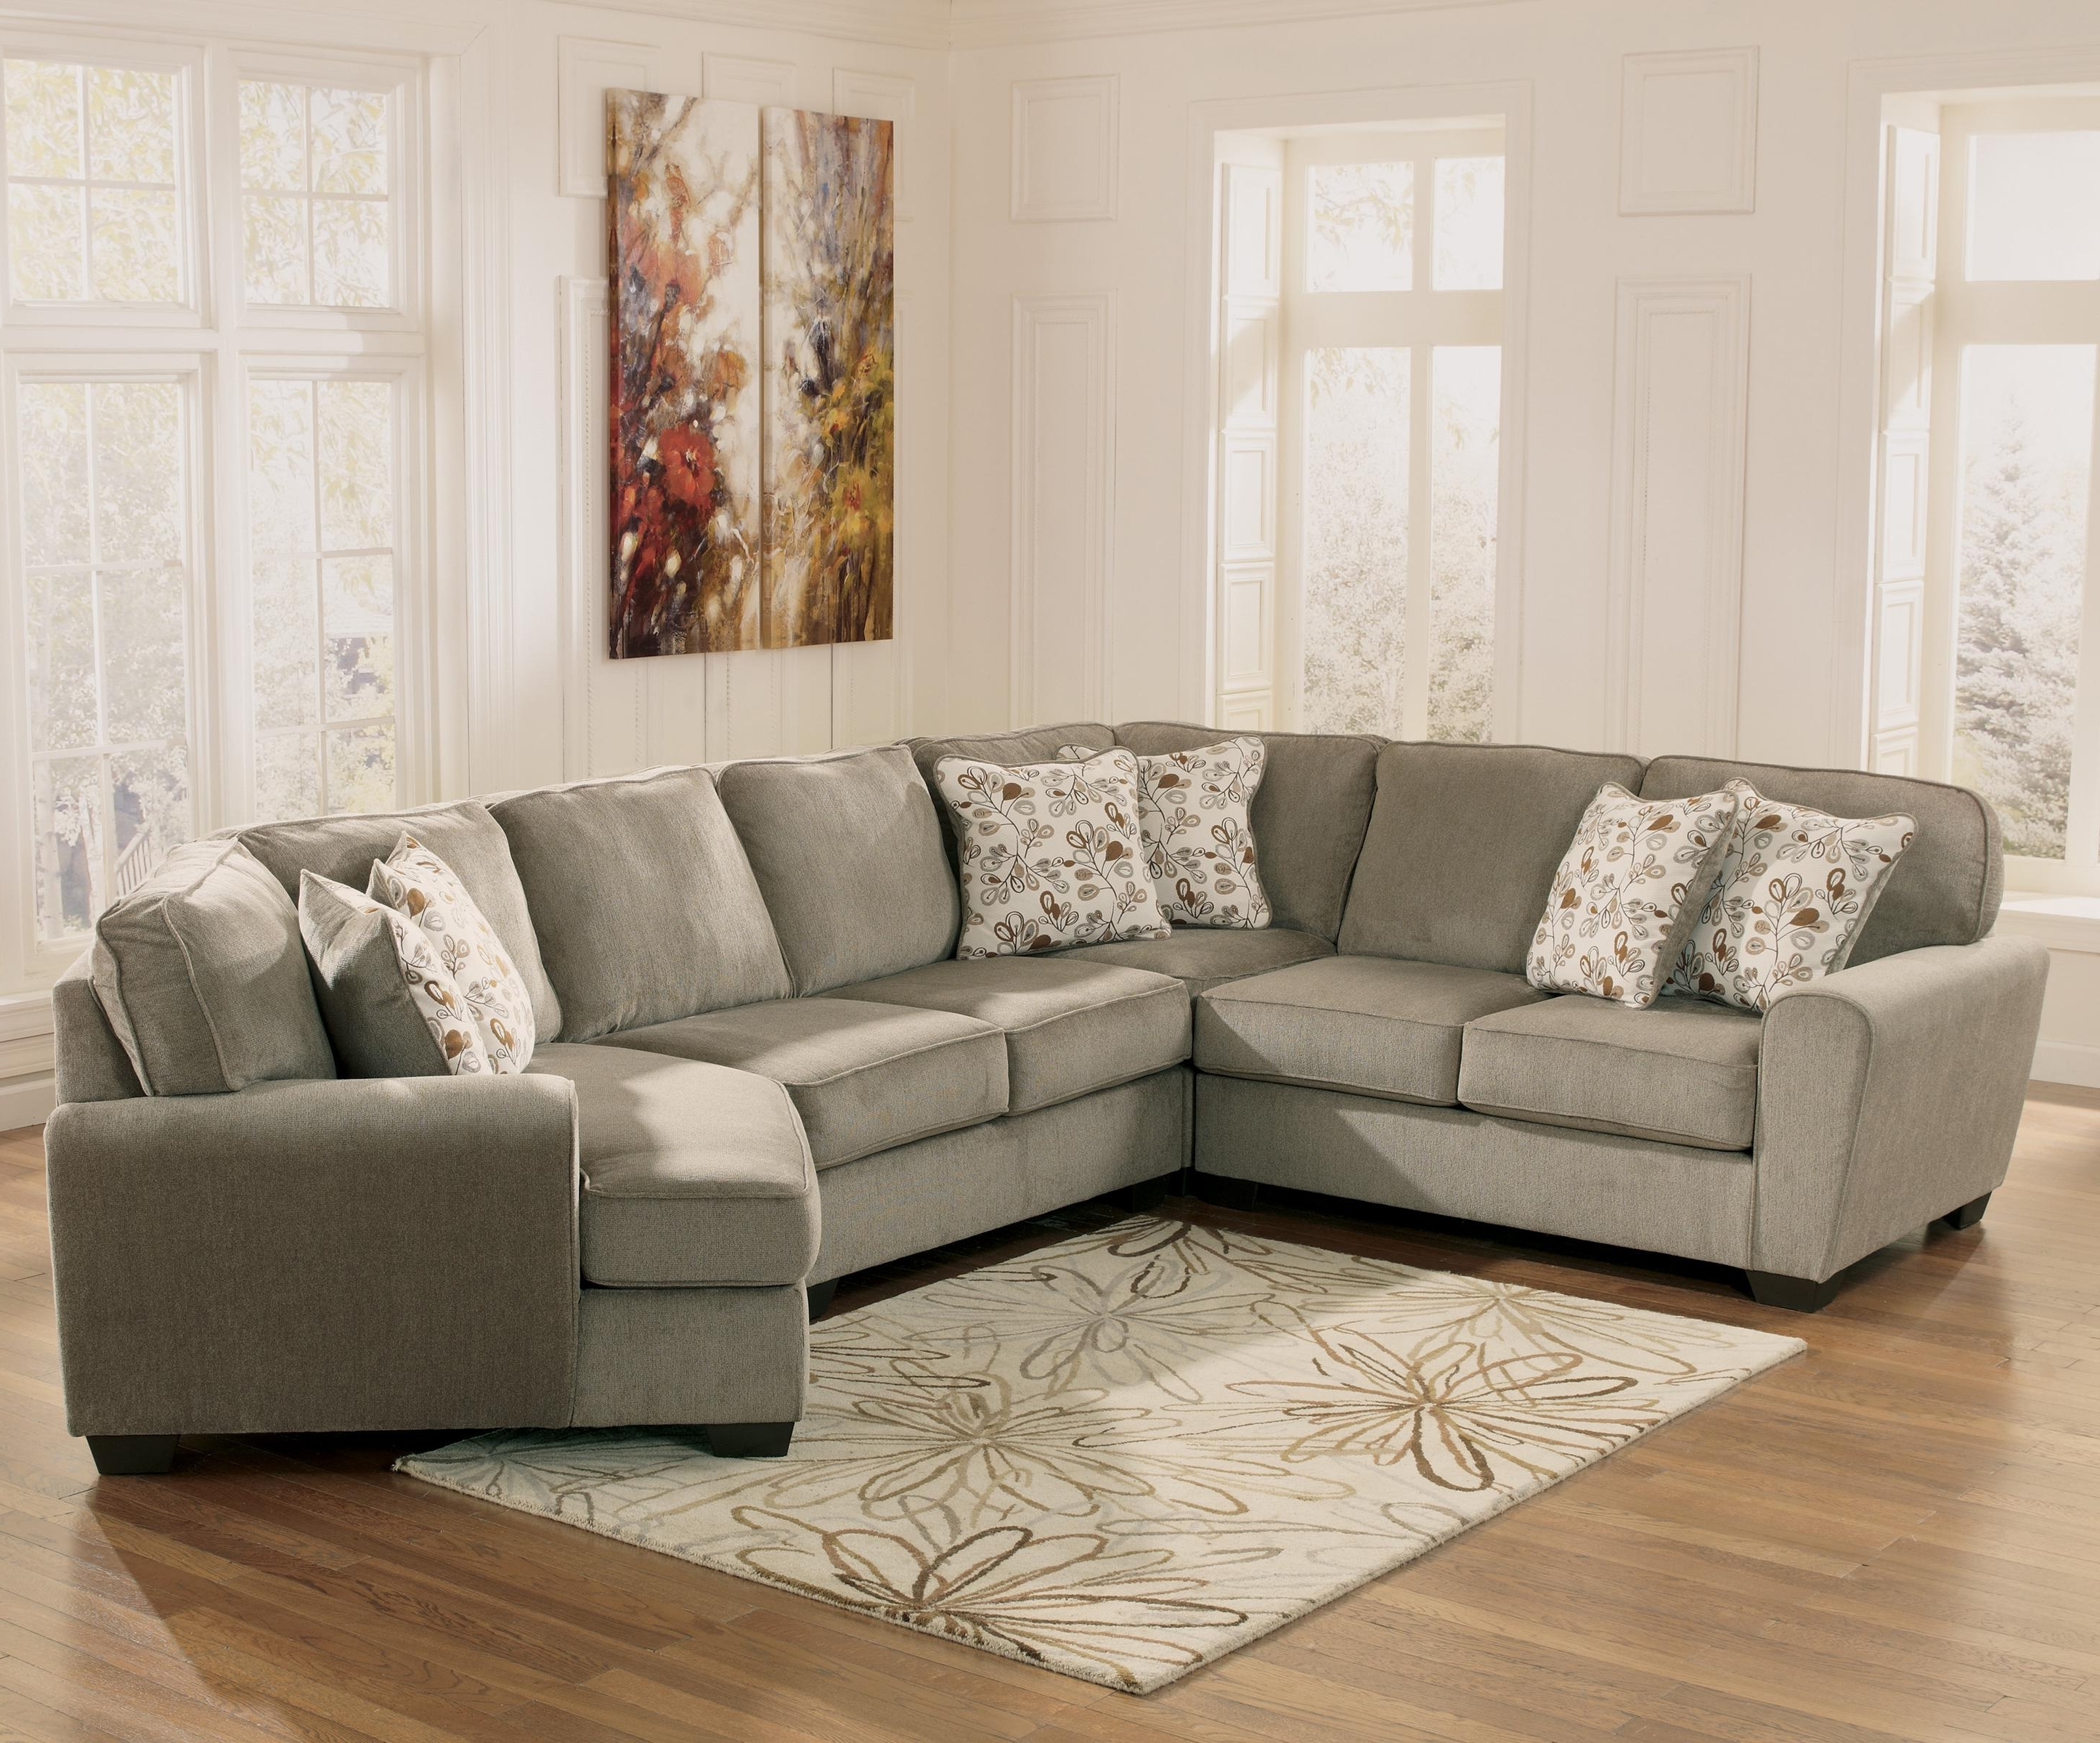 View Gallery Of Nebraska Furniture Mart Sectional Sofas Showing 13